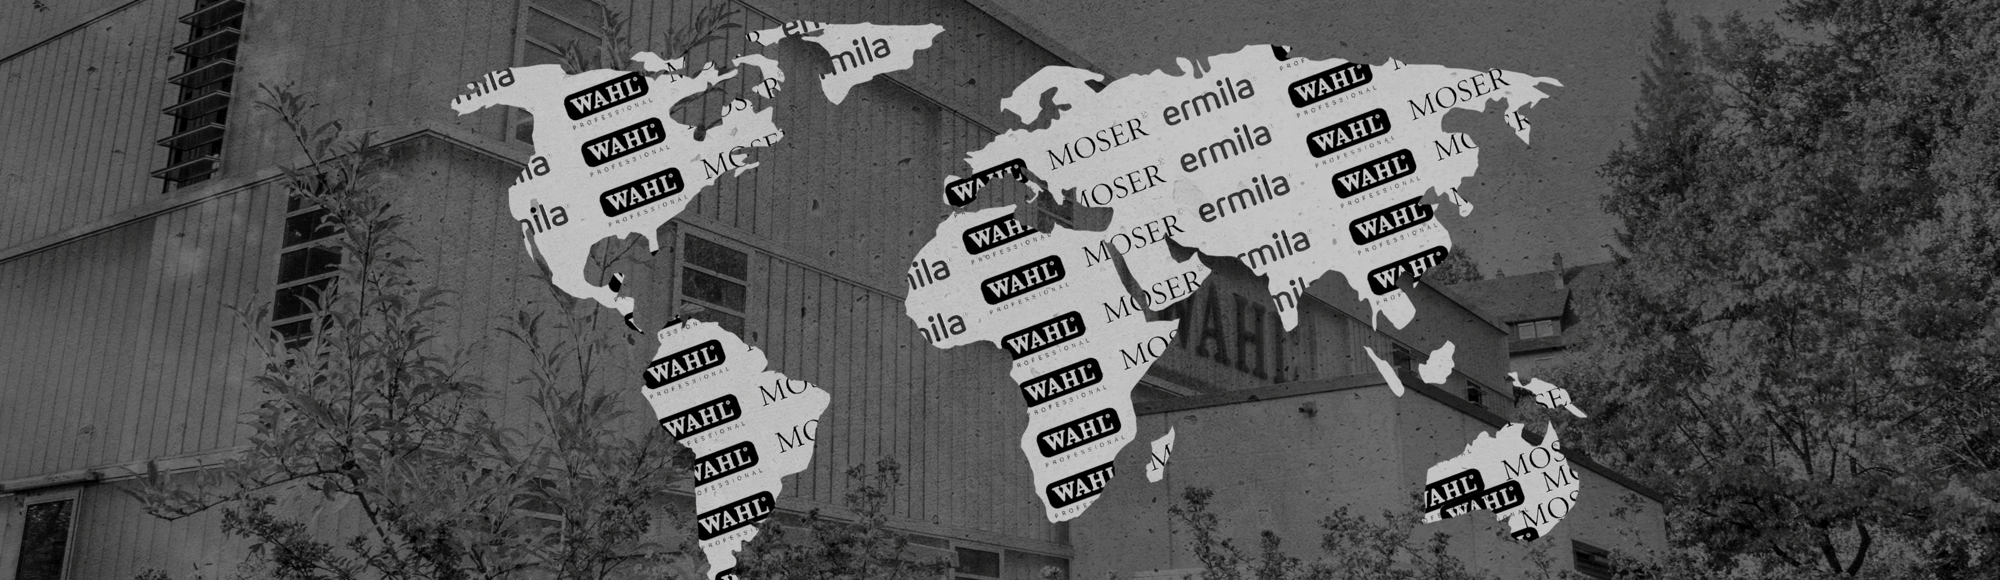 the company wahl gmbh branded map2.png